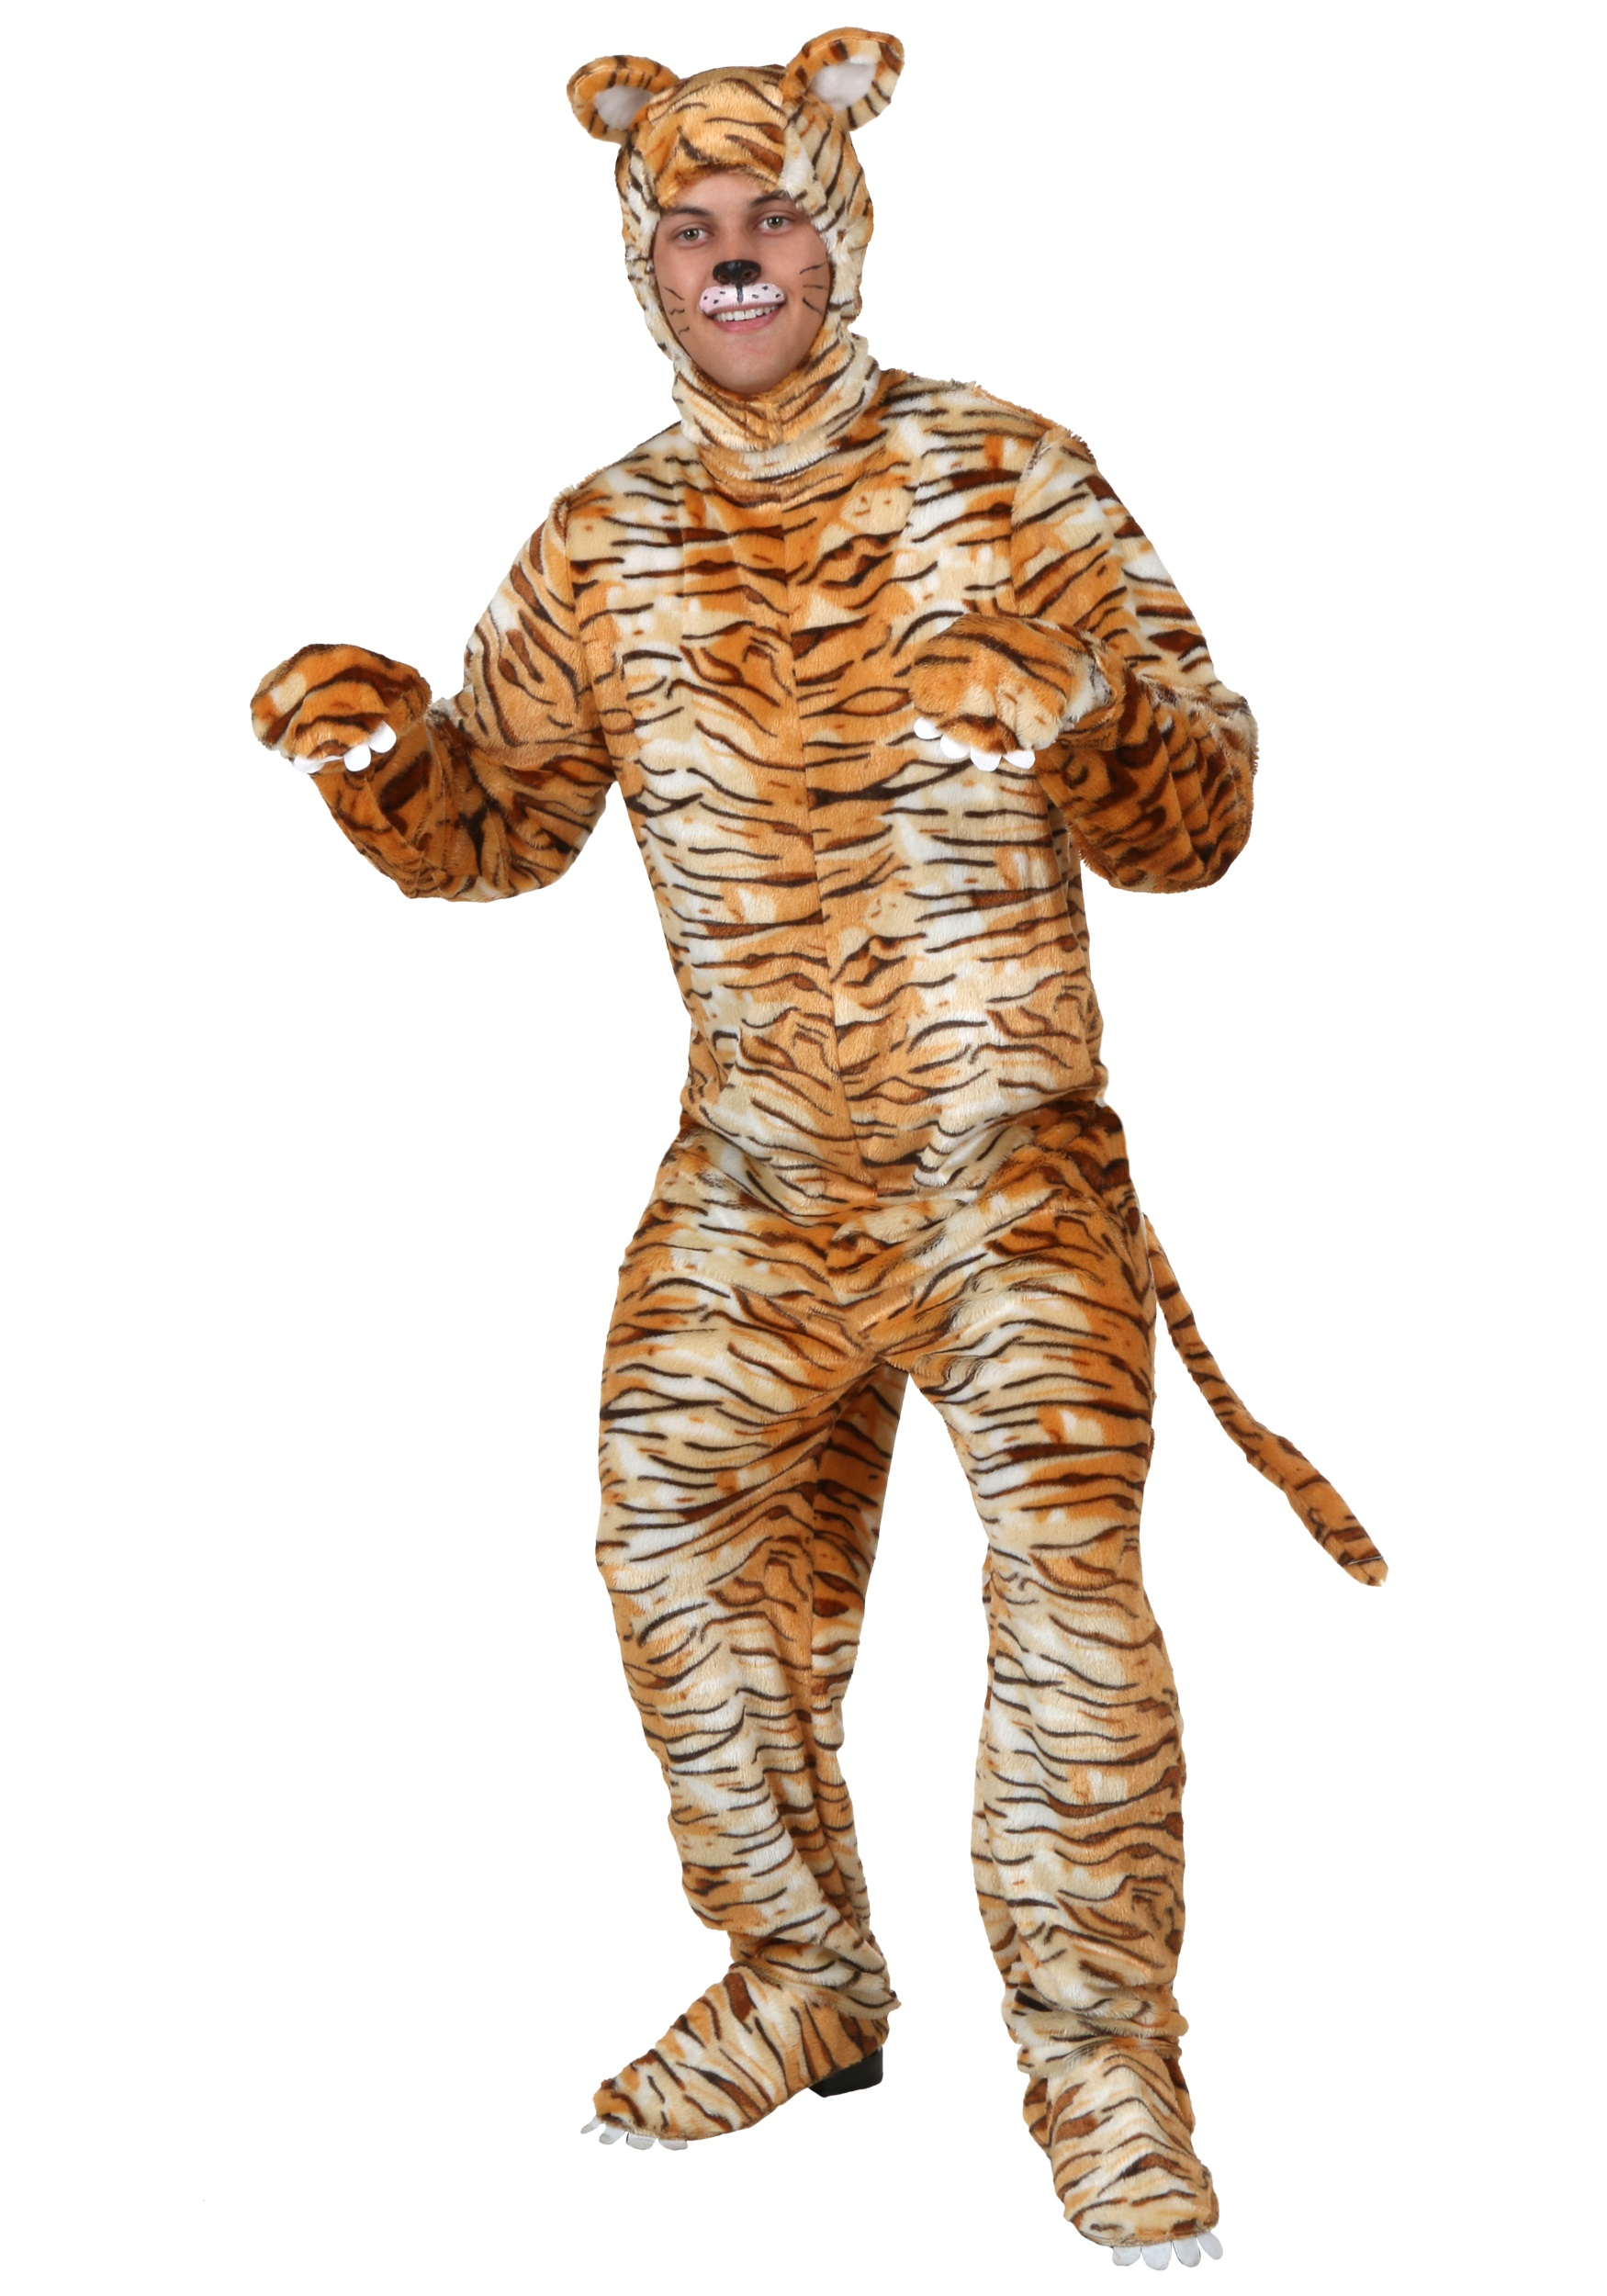 Tiger Costume for Adults